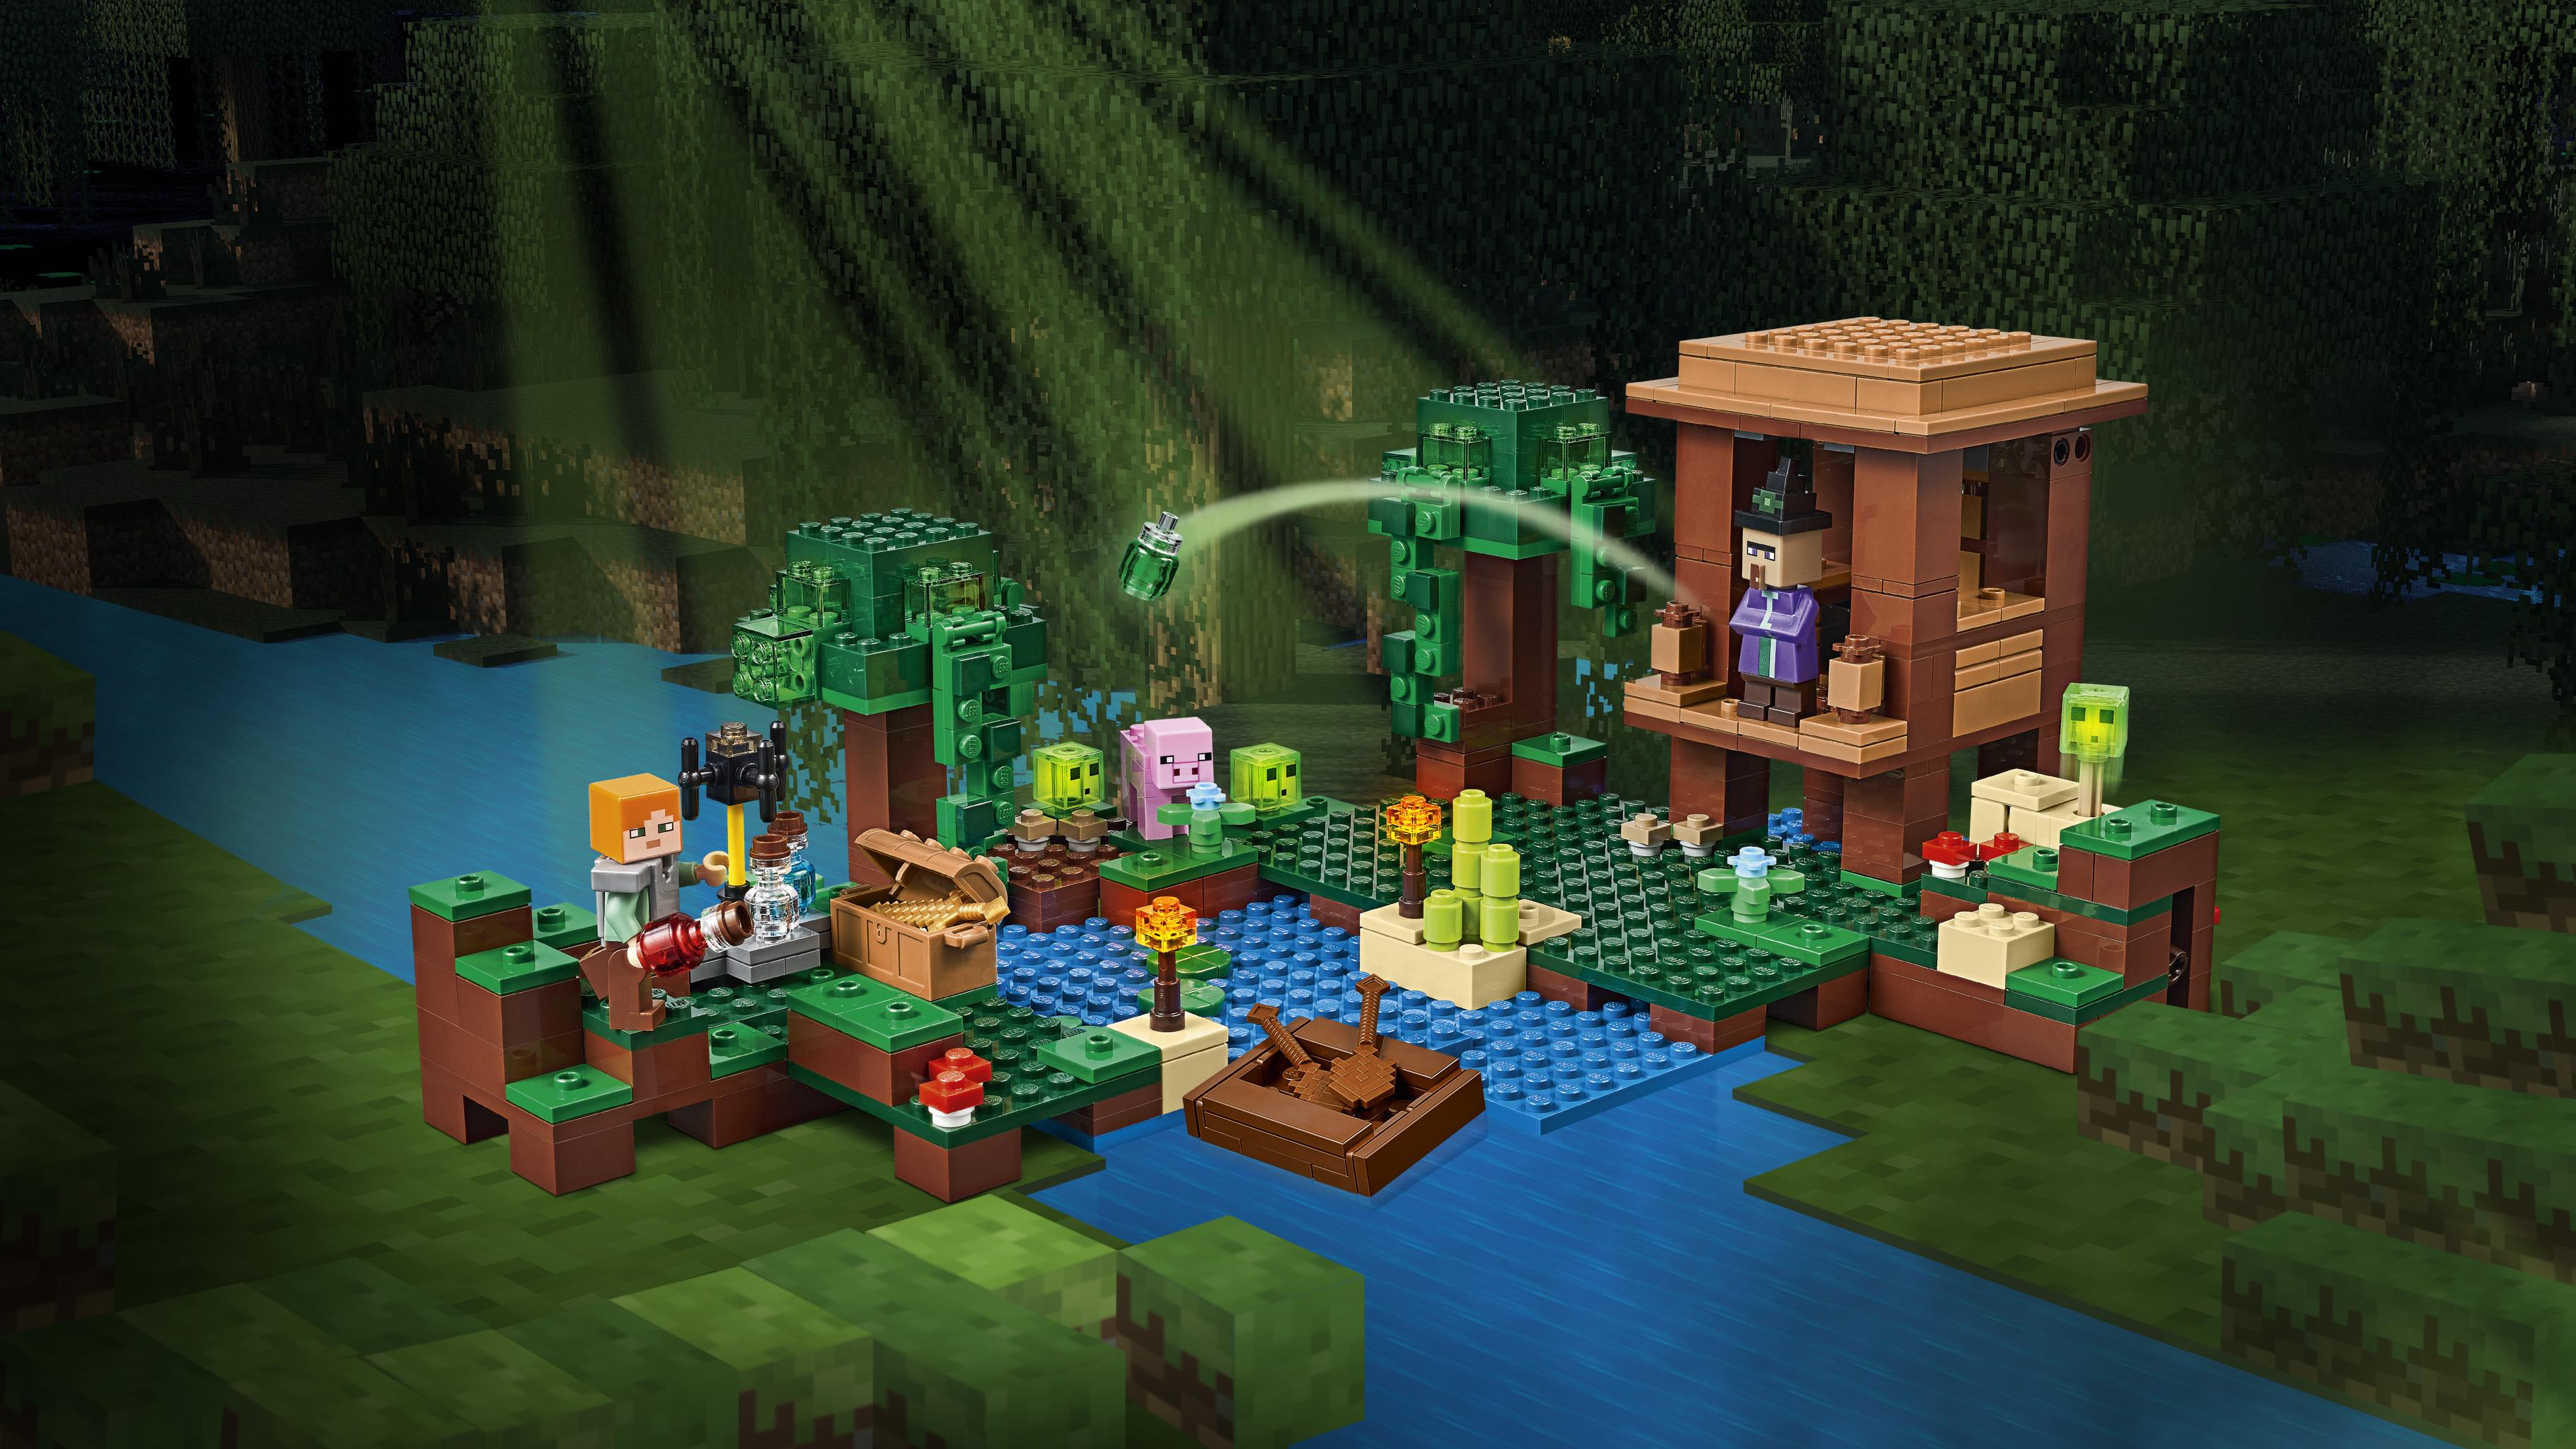 Amazon.com: LEGO Minecraft The Witch Hut 21133: Toys & Games